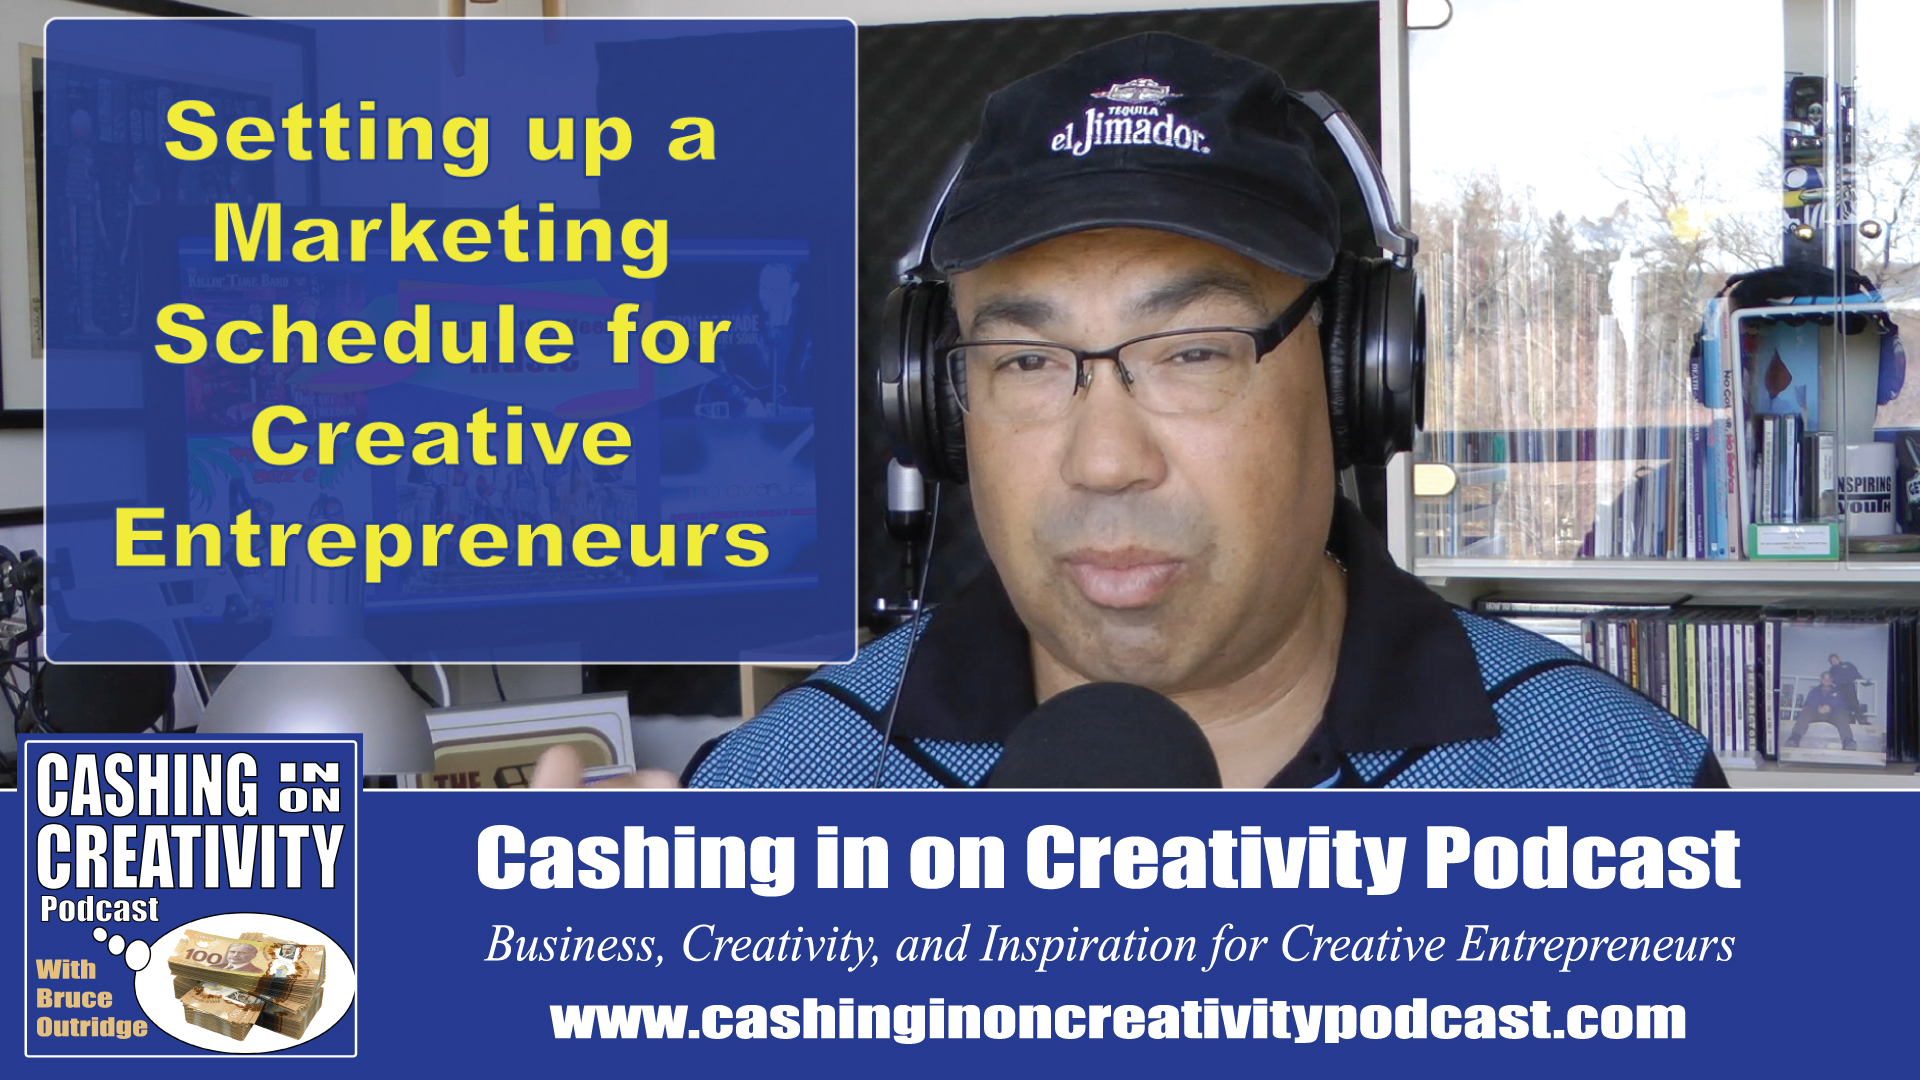 Set up your marketing schedule as a creative entrepreneur